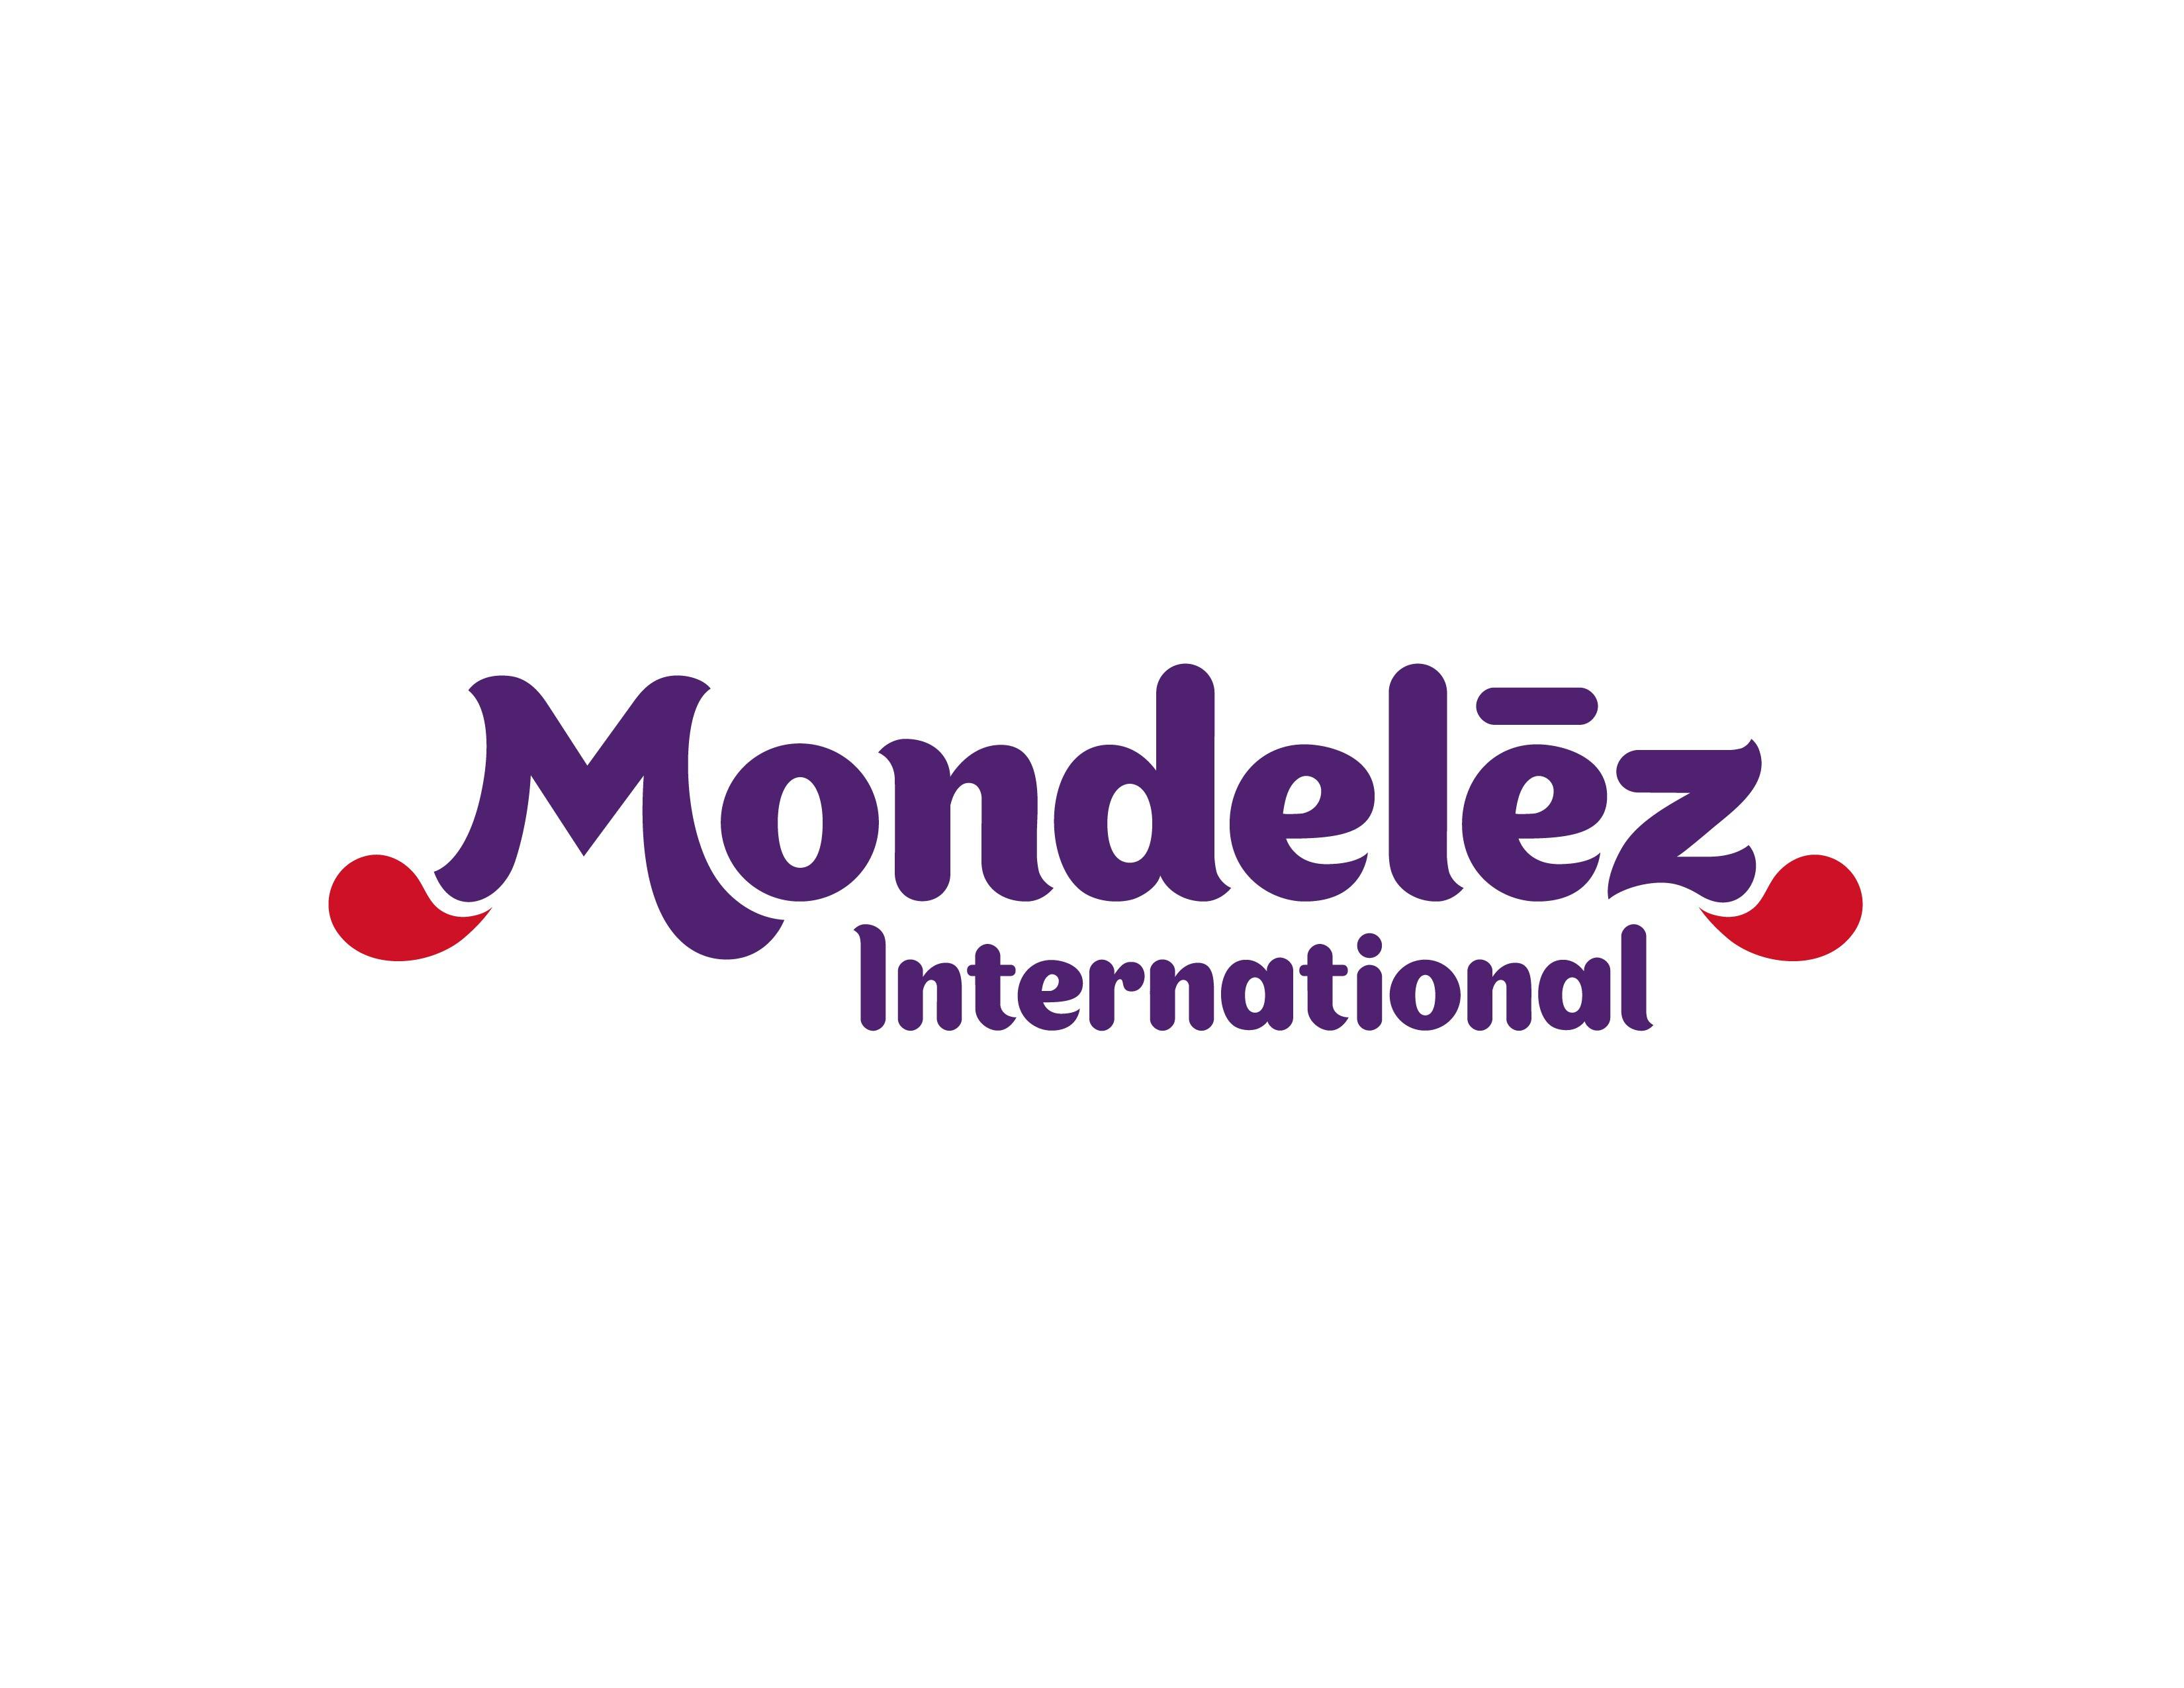 Deerfield-based Mondelez International Inc. and D.E. Master Blenders 1753 B.V. are combining their coffee businesses.